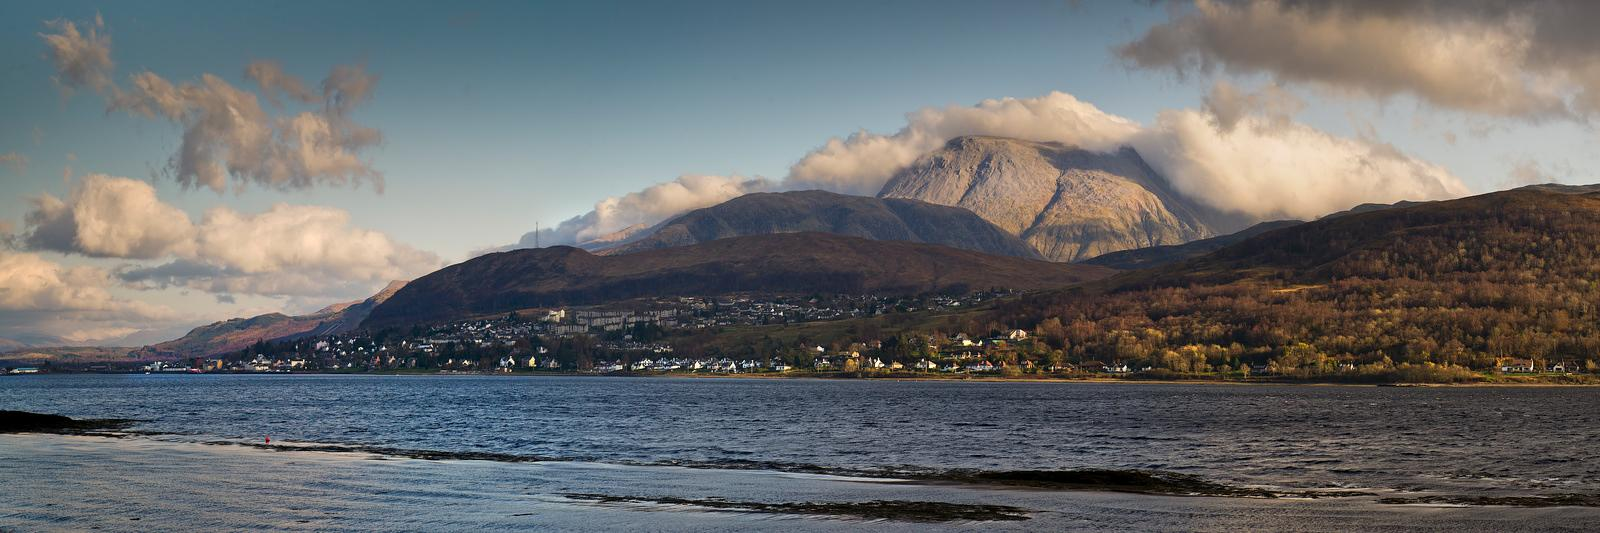 Ben Nevis and Loch Linnhe panorama